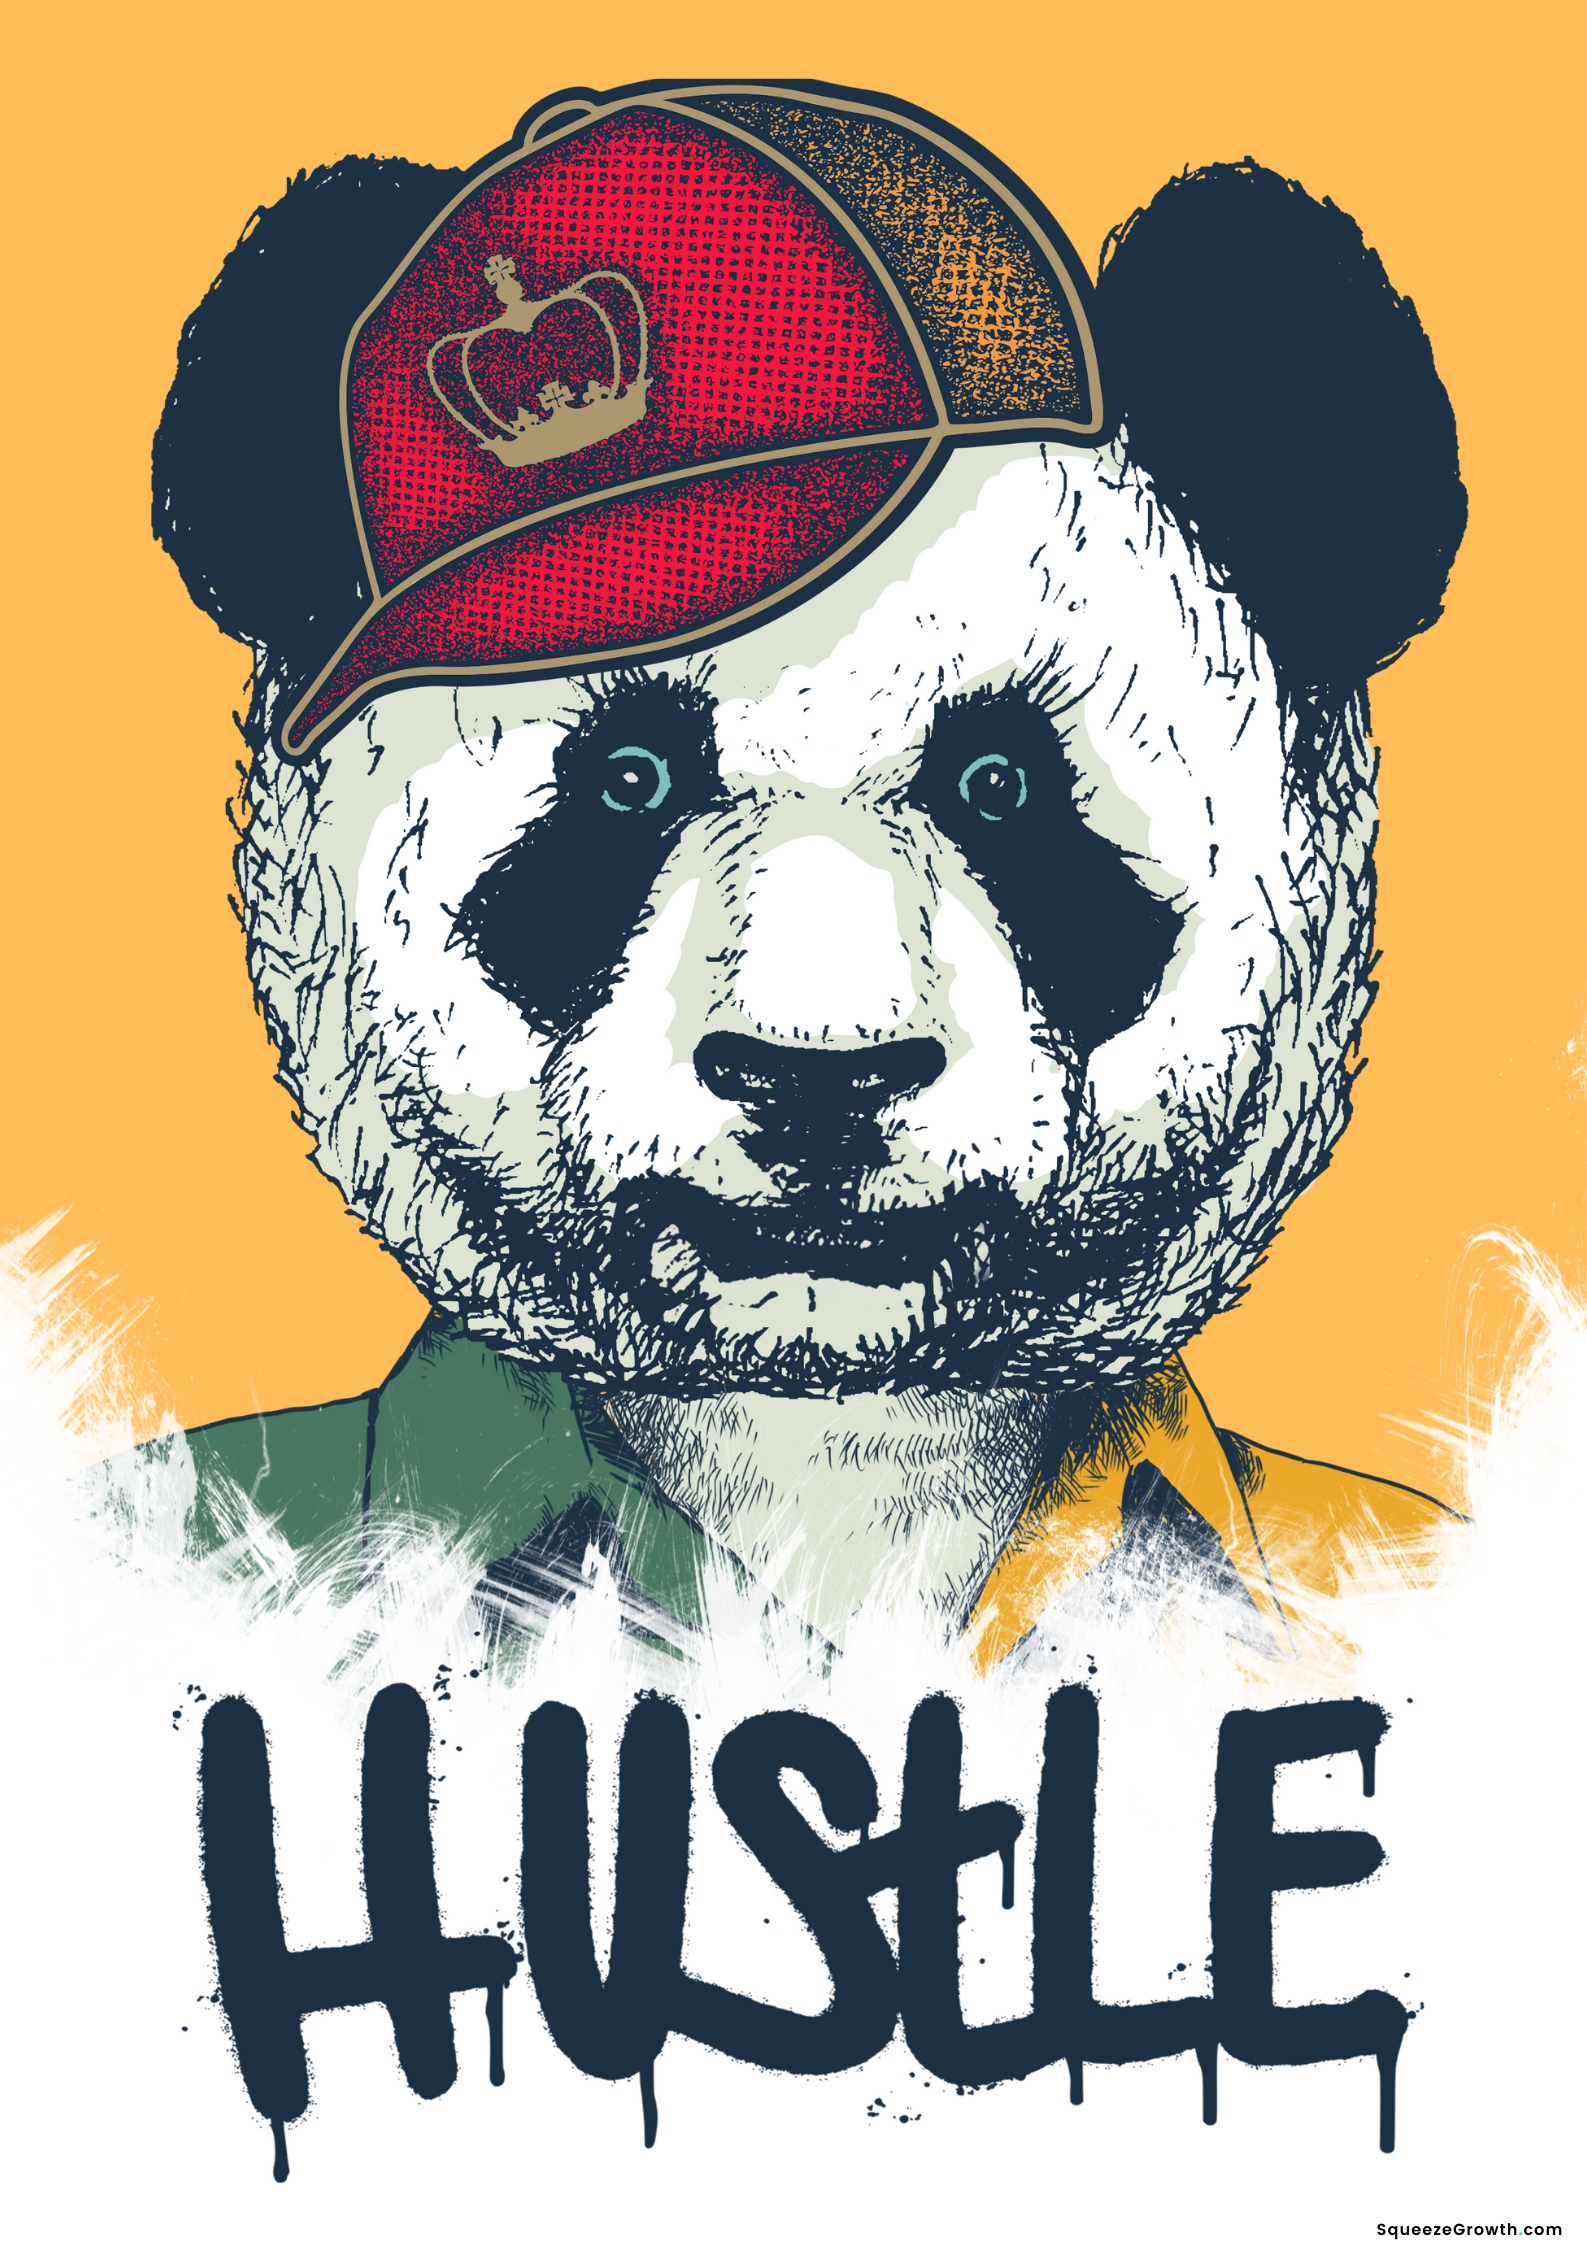 Copy of Copy of Happy Coloured Hustle Panda white background large wording